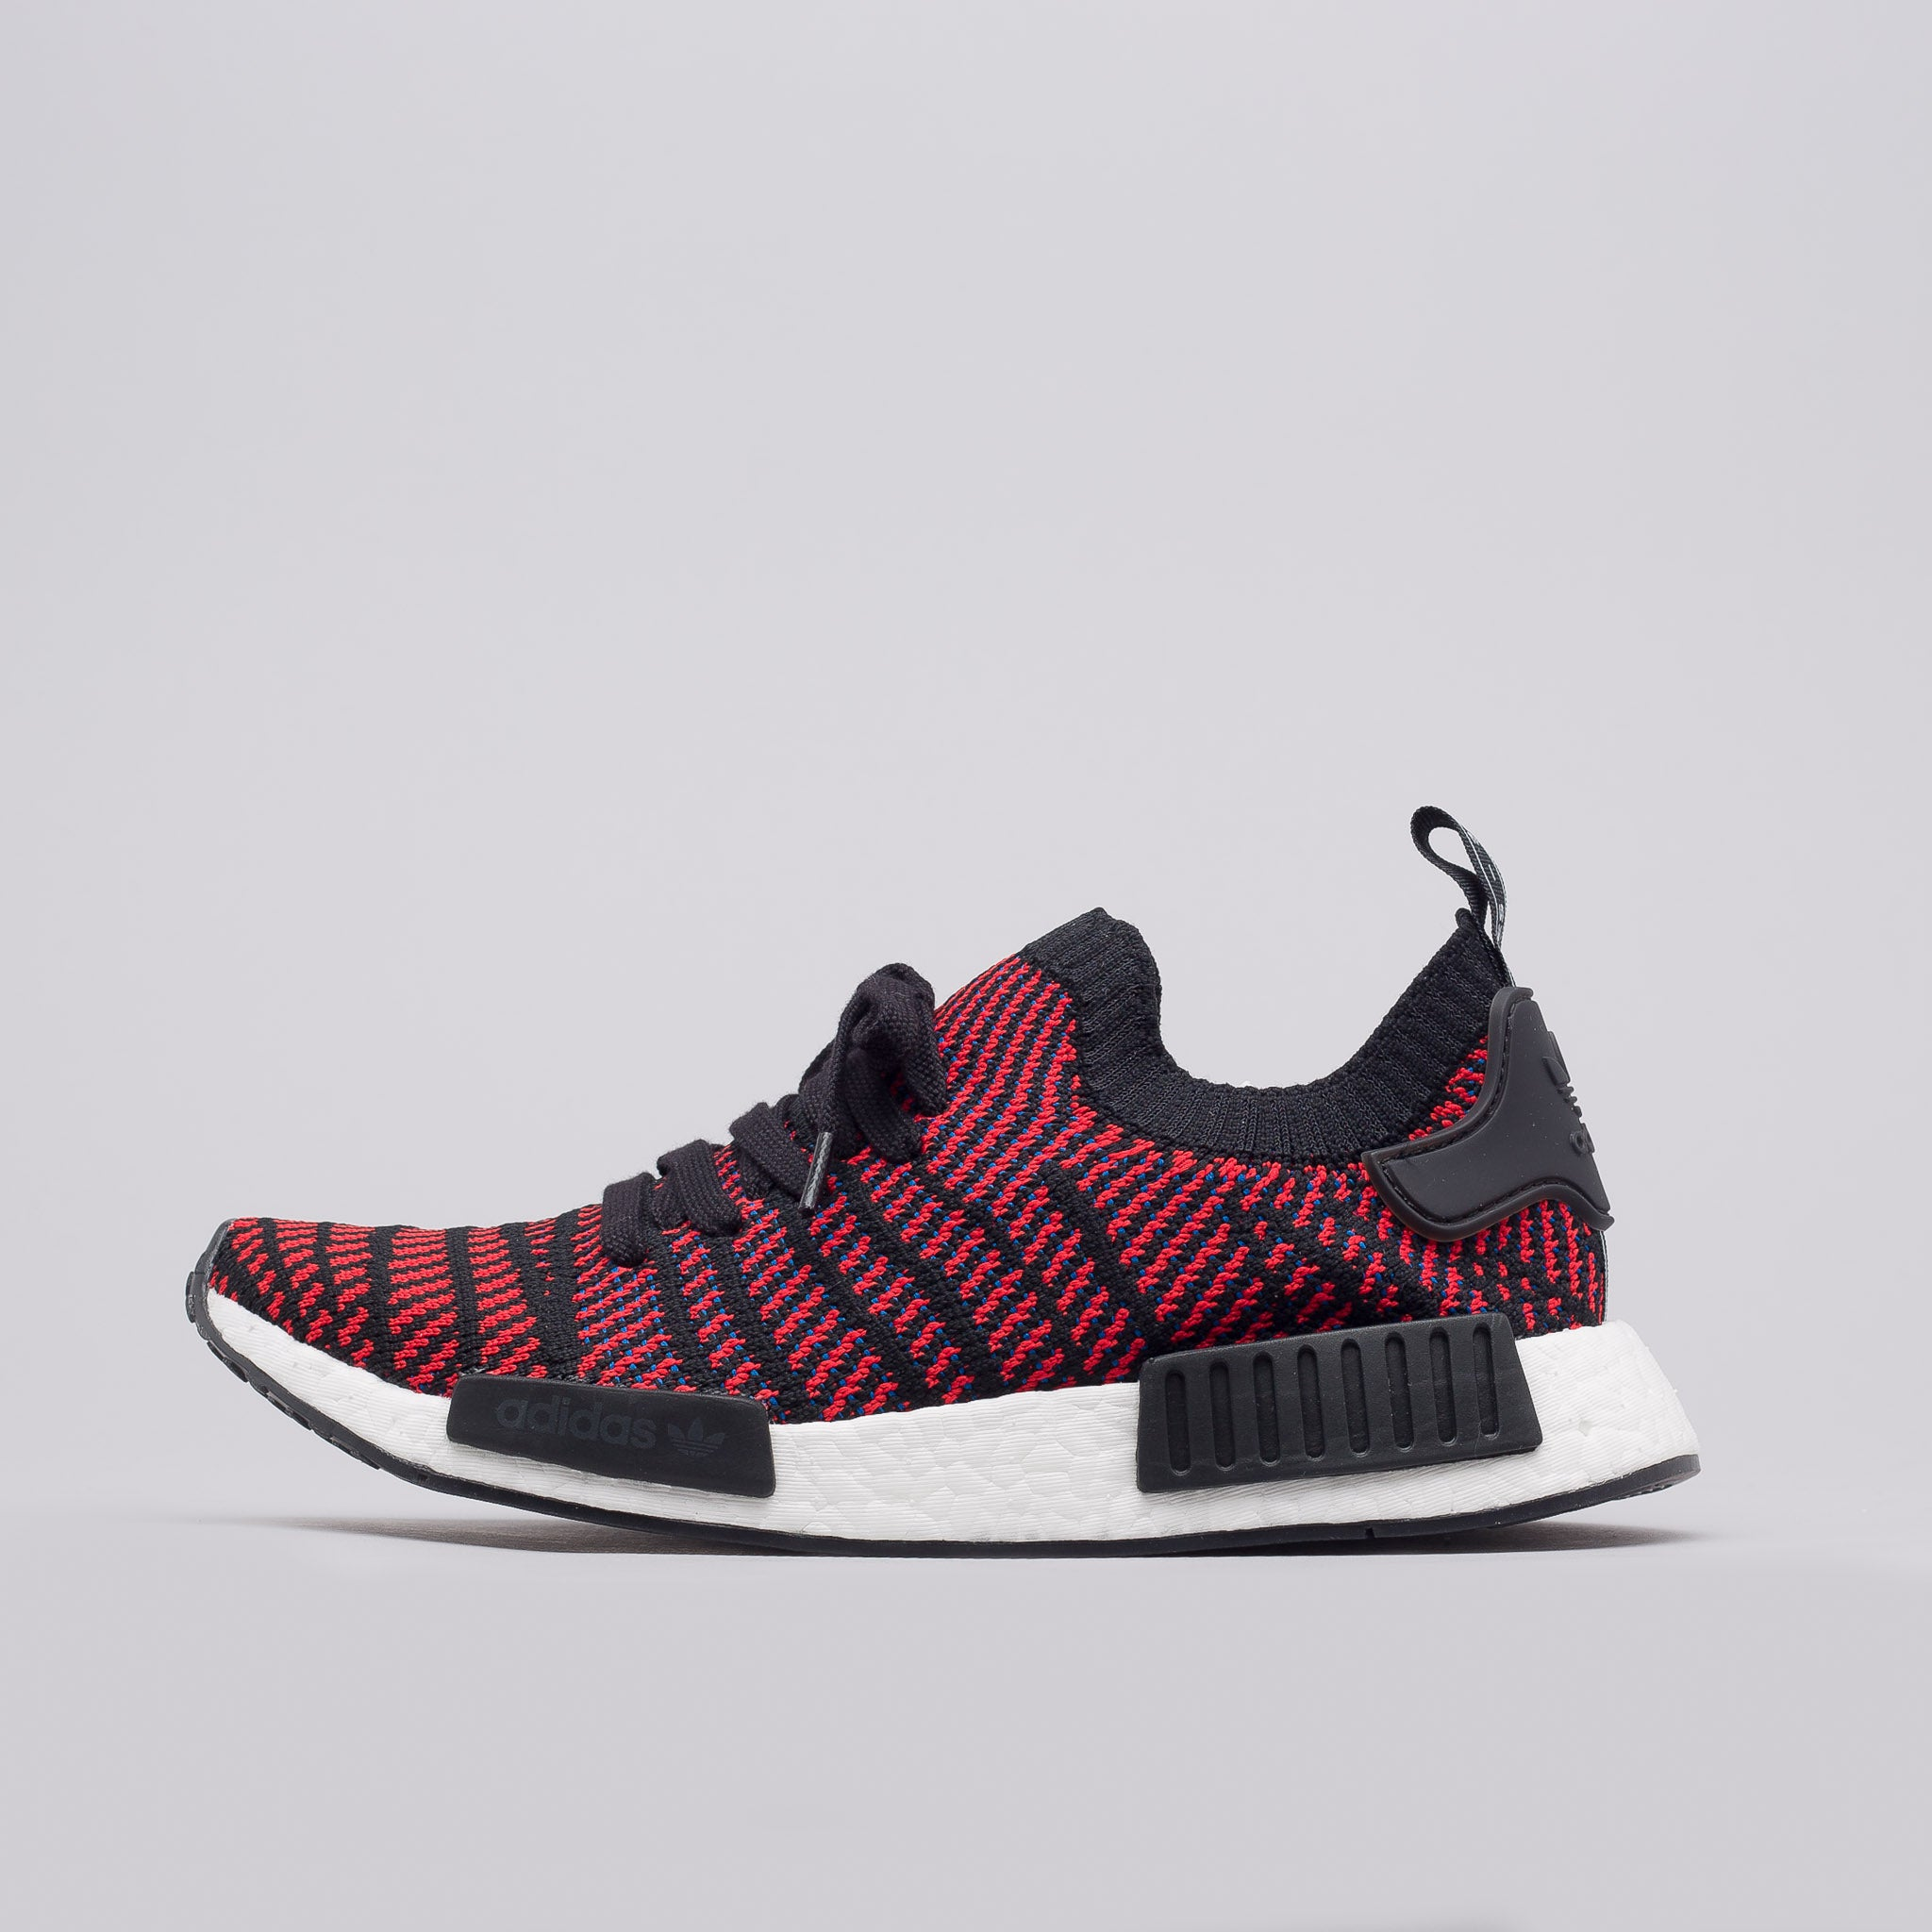 Adidas Women's NMD R1 Runner size 6 salmon pink sold out